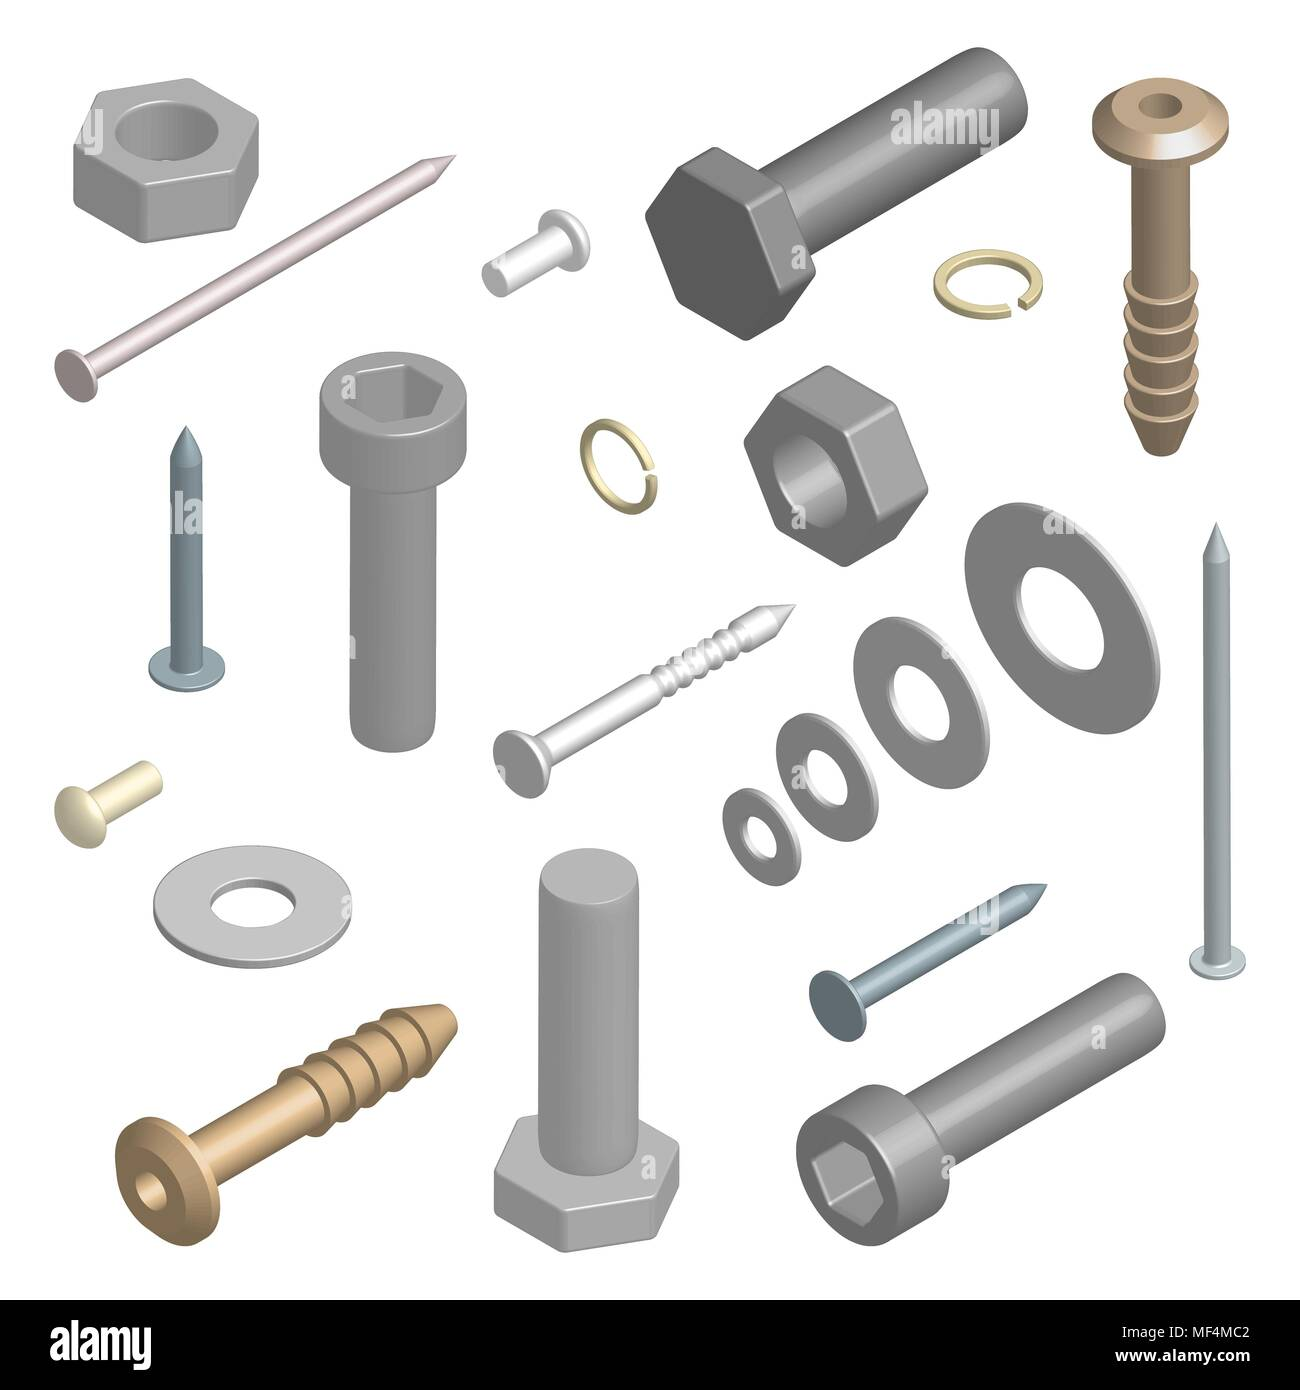 Set of different fasteners isolated on white background. 3D isometric style, vector illustration. - Stock Image